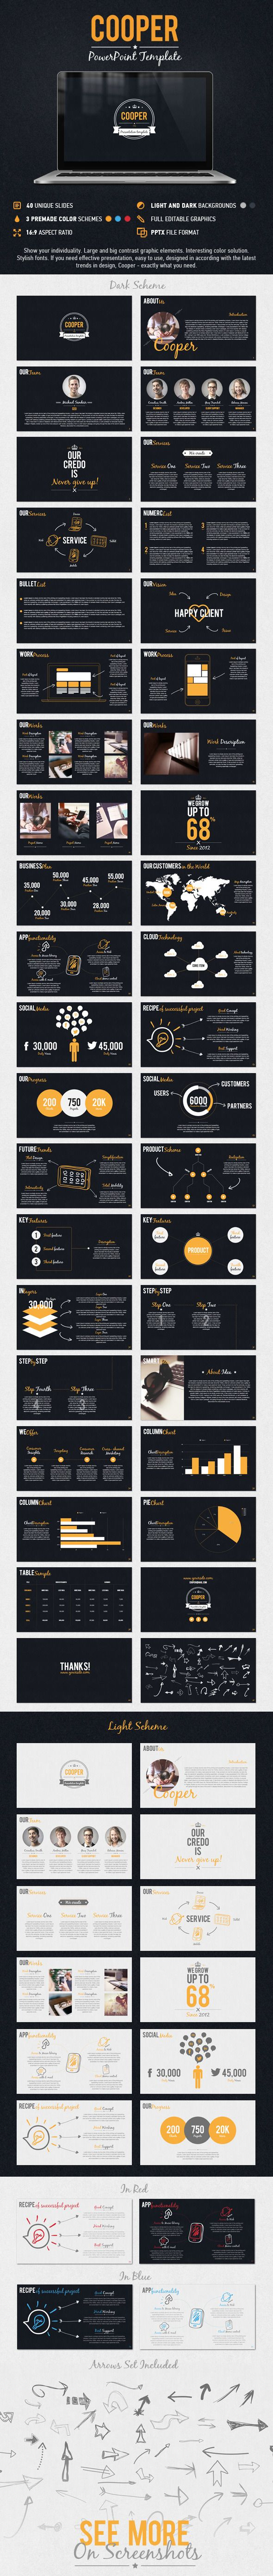 Cooper PowerPoint Presentation Template